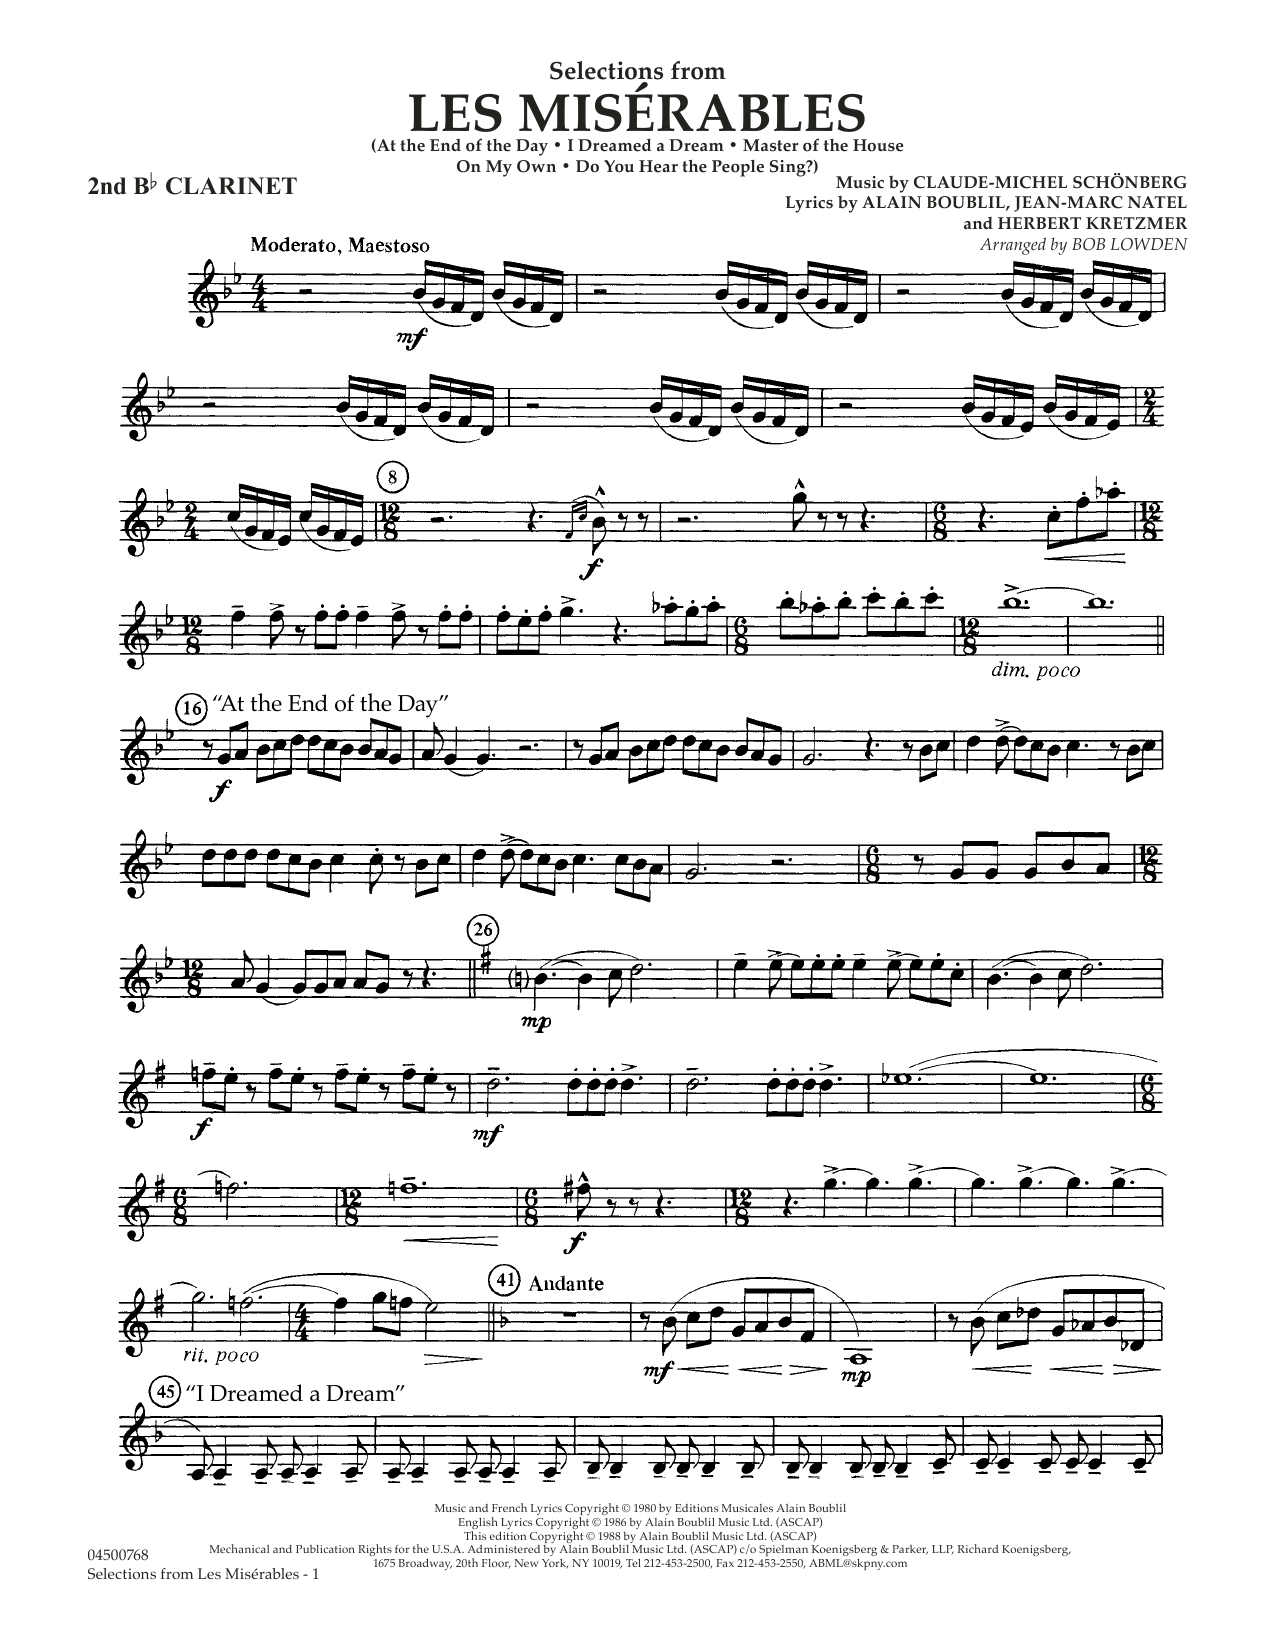 Claude-Michael Schonberg Selections from Les Miserables (arr. Bob Lowden) - Bb Clarinet 2 sheet music notes and chords